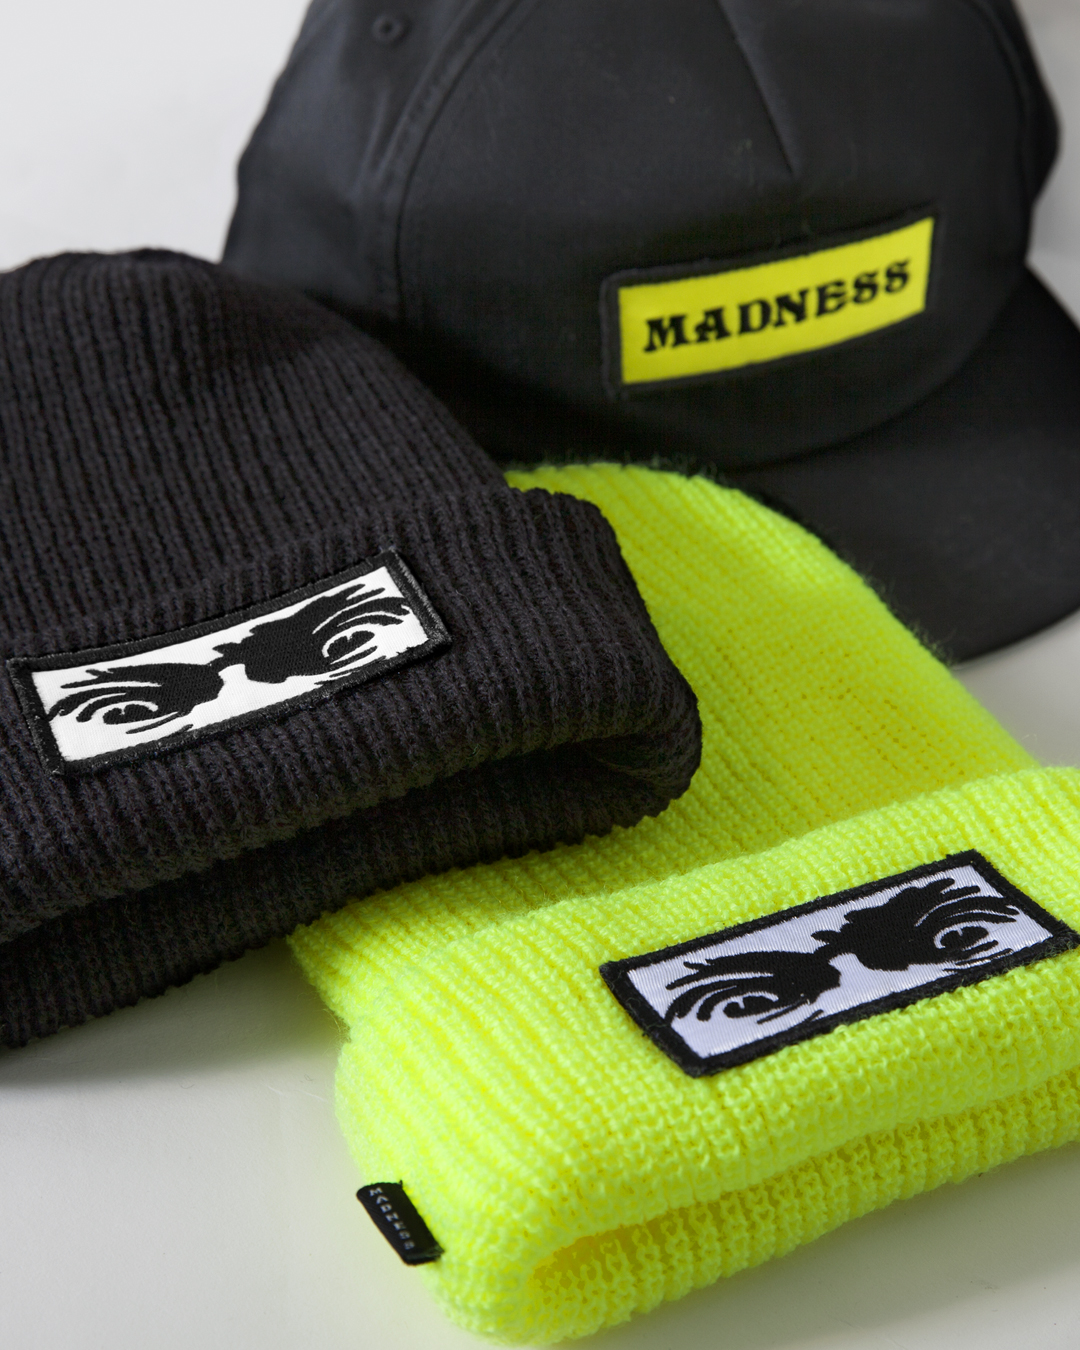 Madness-skateboards-Apparel-1350-Head-1.jpg